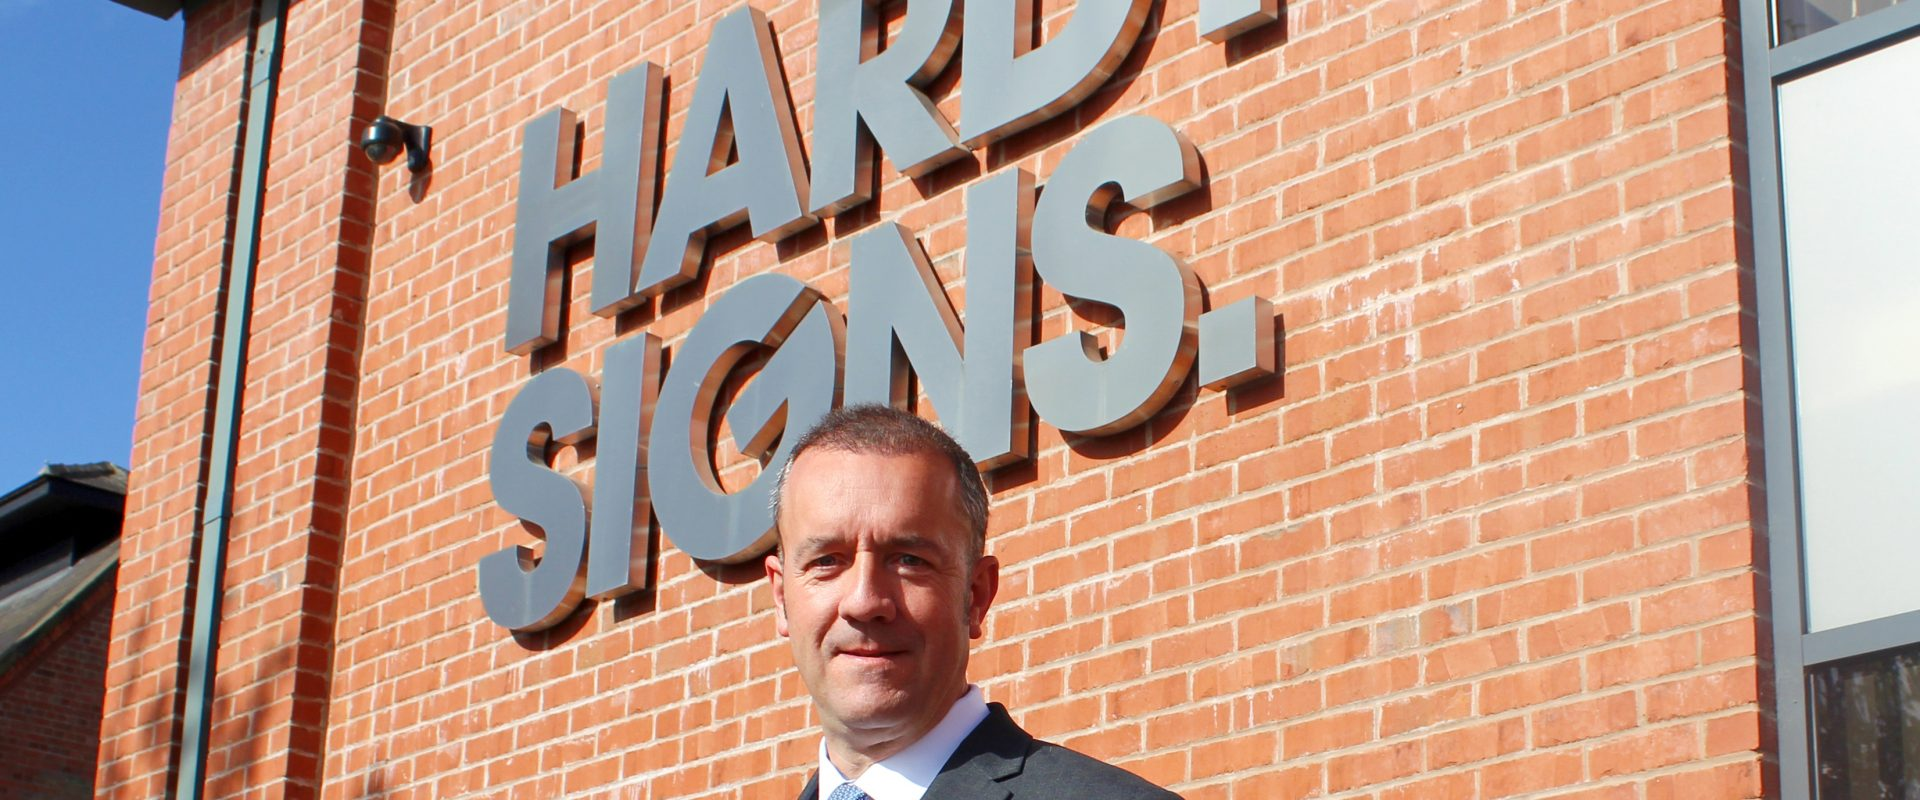 Burton signage company lands overseas contract, creates jobs and wins awards – thanks to business funding